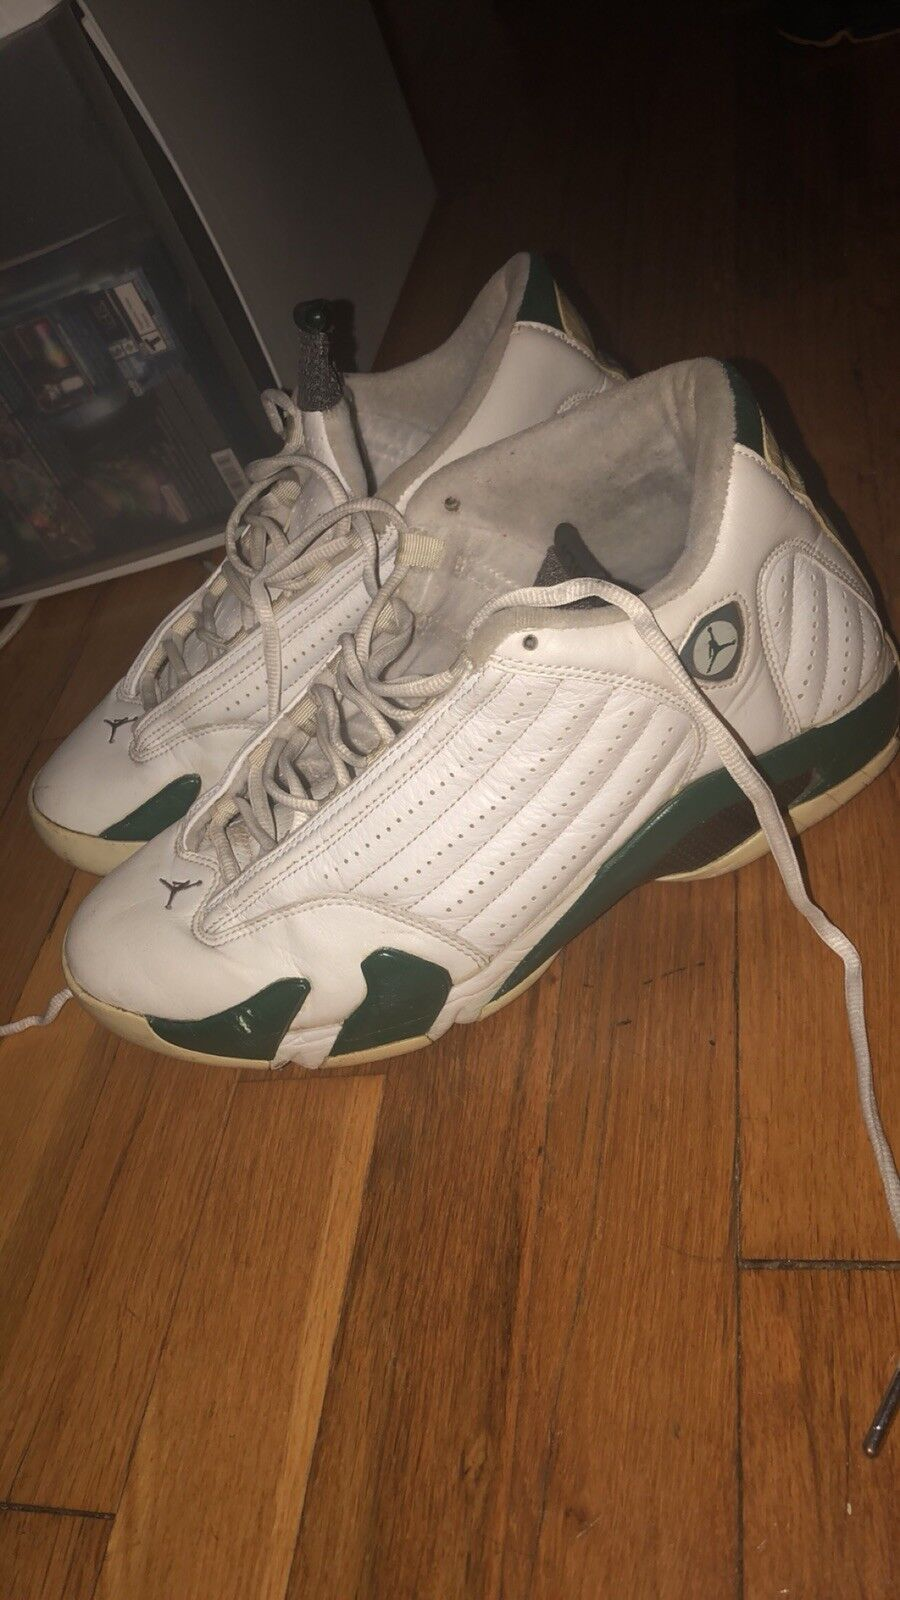 2005 Air Jordan 14 White And Forest Green Uomo Size 10.5